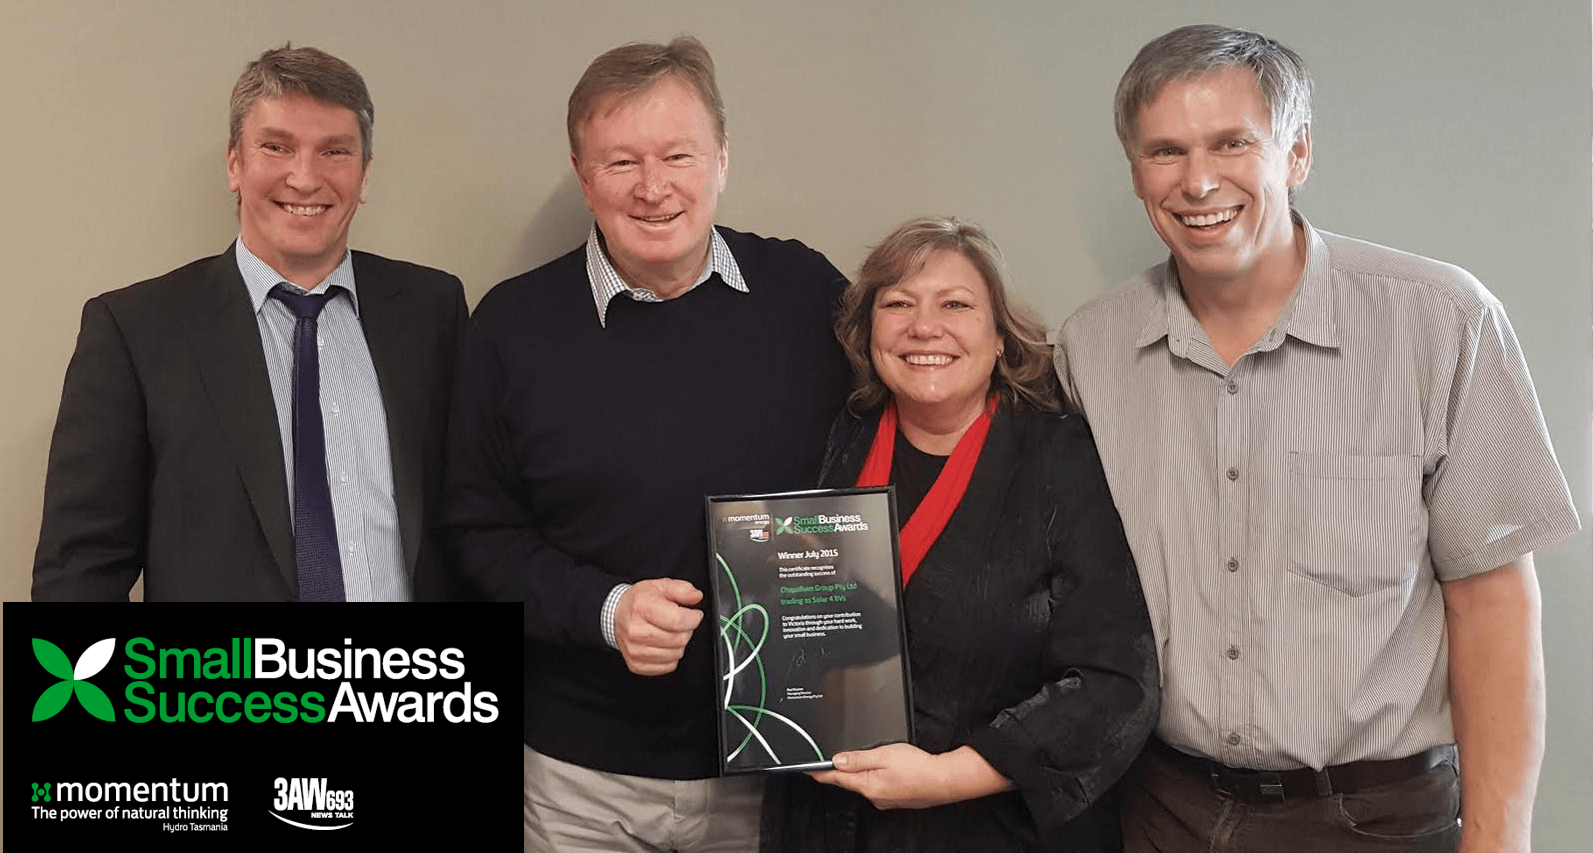 Solar 4 RVs accepts 3AW Business success Award from Denis Walter